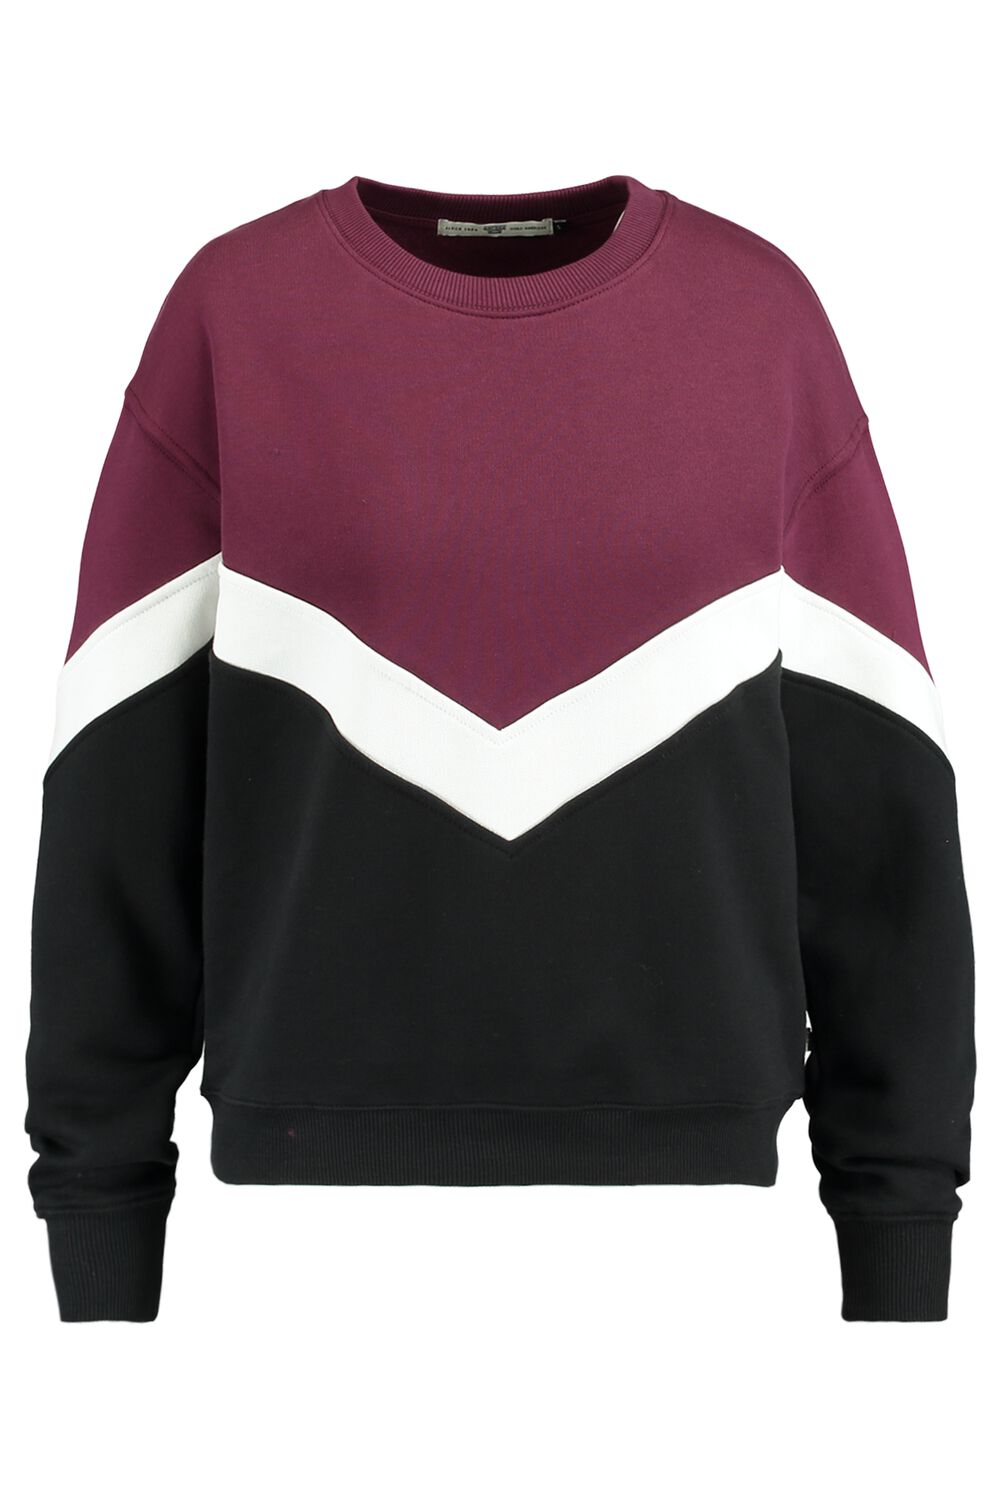 America Today Dames Sweater Sadie Rood